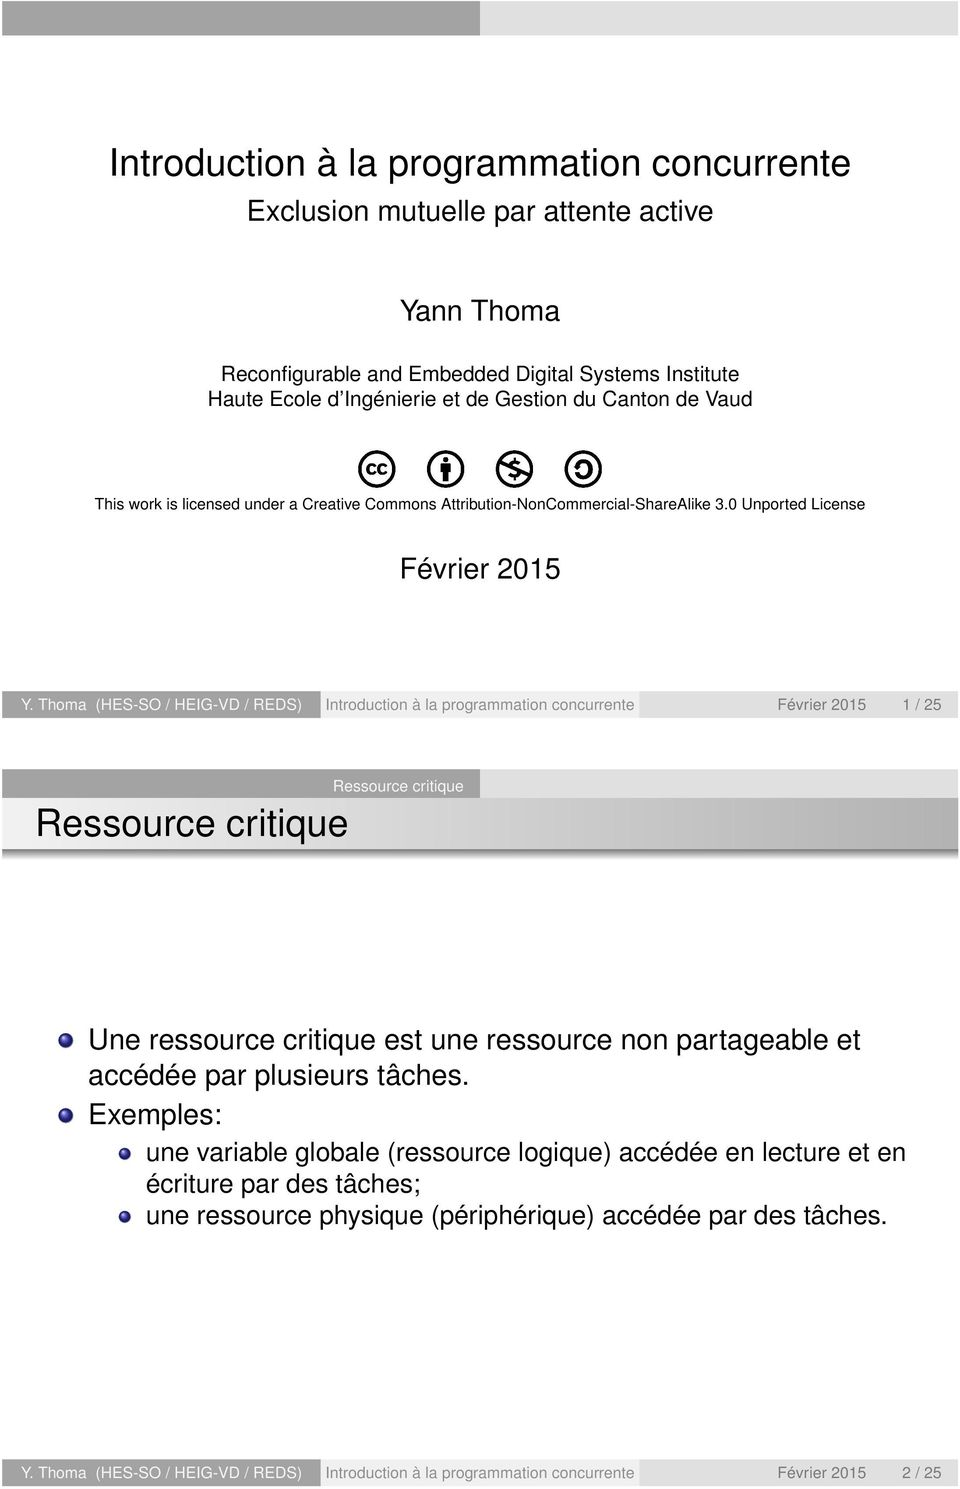 Thoma (HES-SO / HEIG-VD / REDS) Introduction à la programmation concurrente Février 2015 1 / 25 Une ressource critique est une ressource non partageable et accédée par plusieurs tâches.